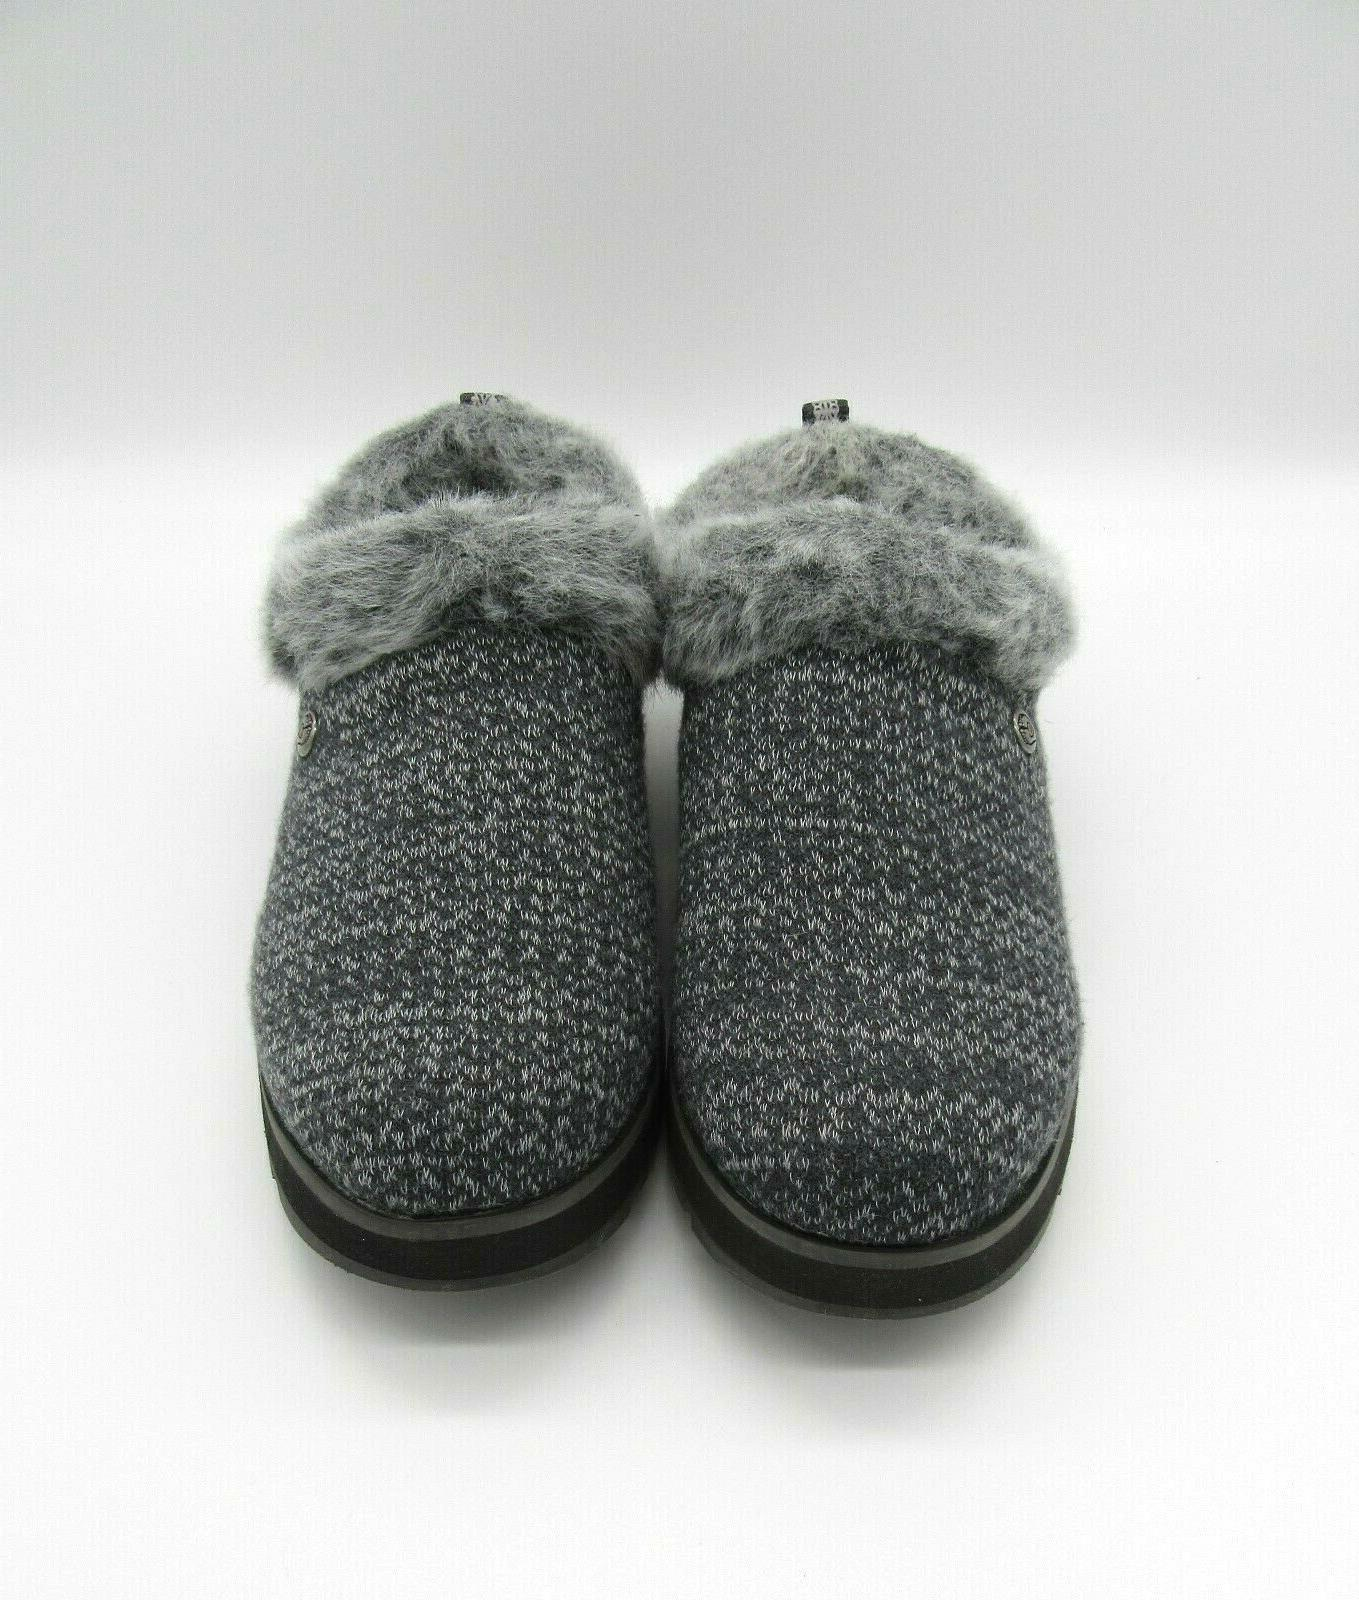 BOBS Skechers 6 High Charcoal Gray Knit Slip On Clogs